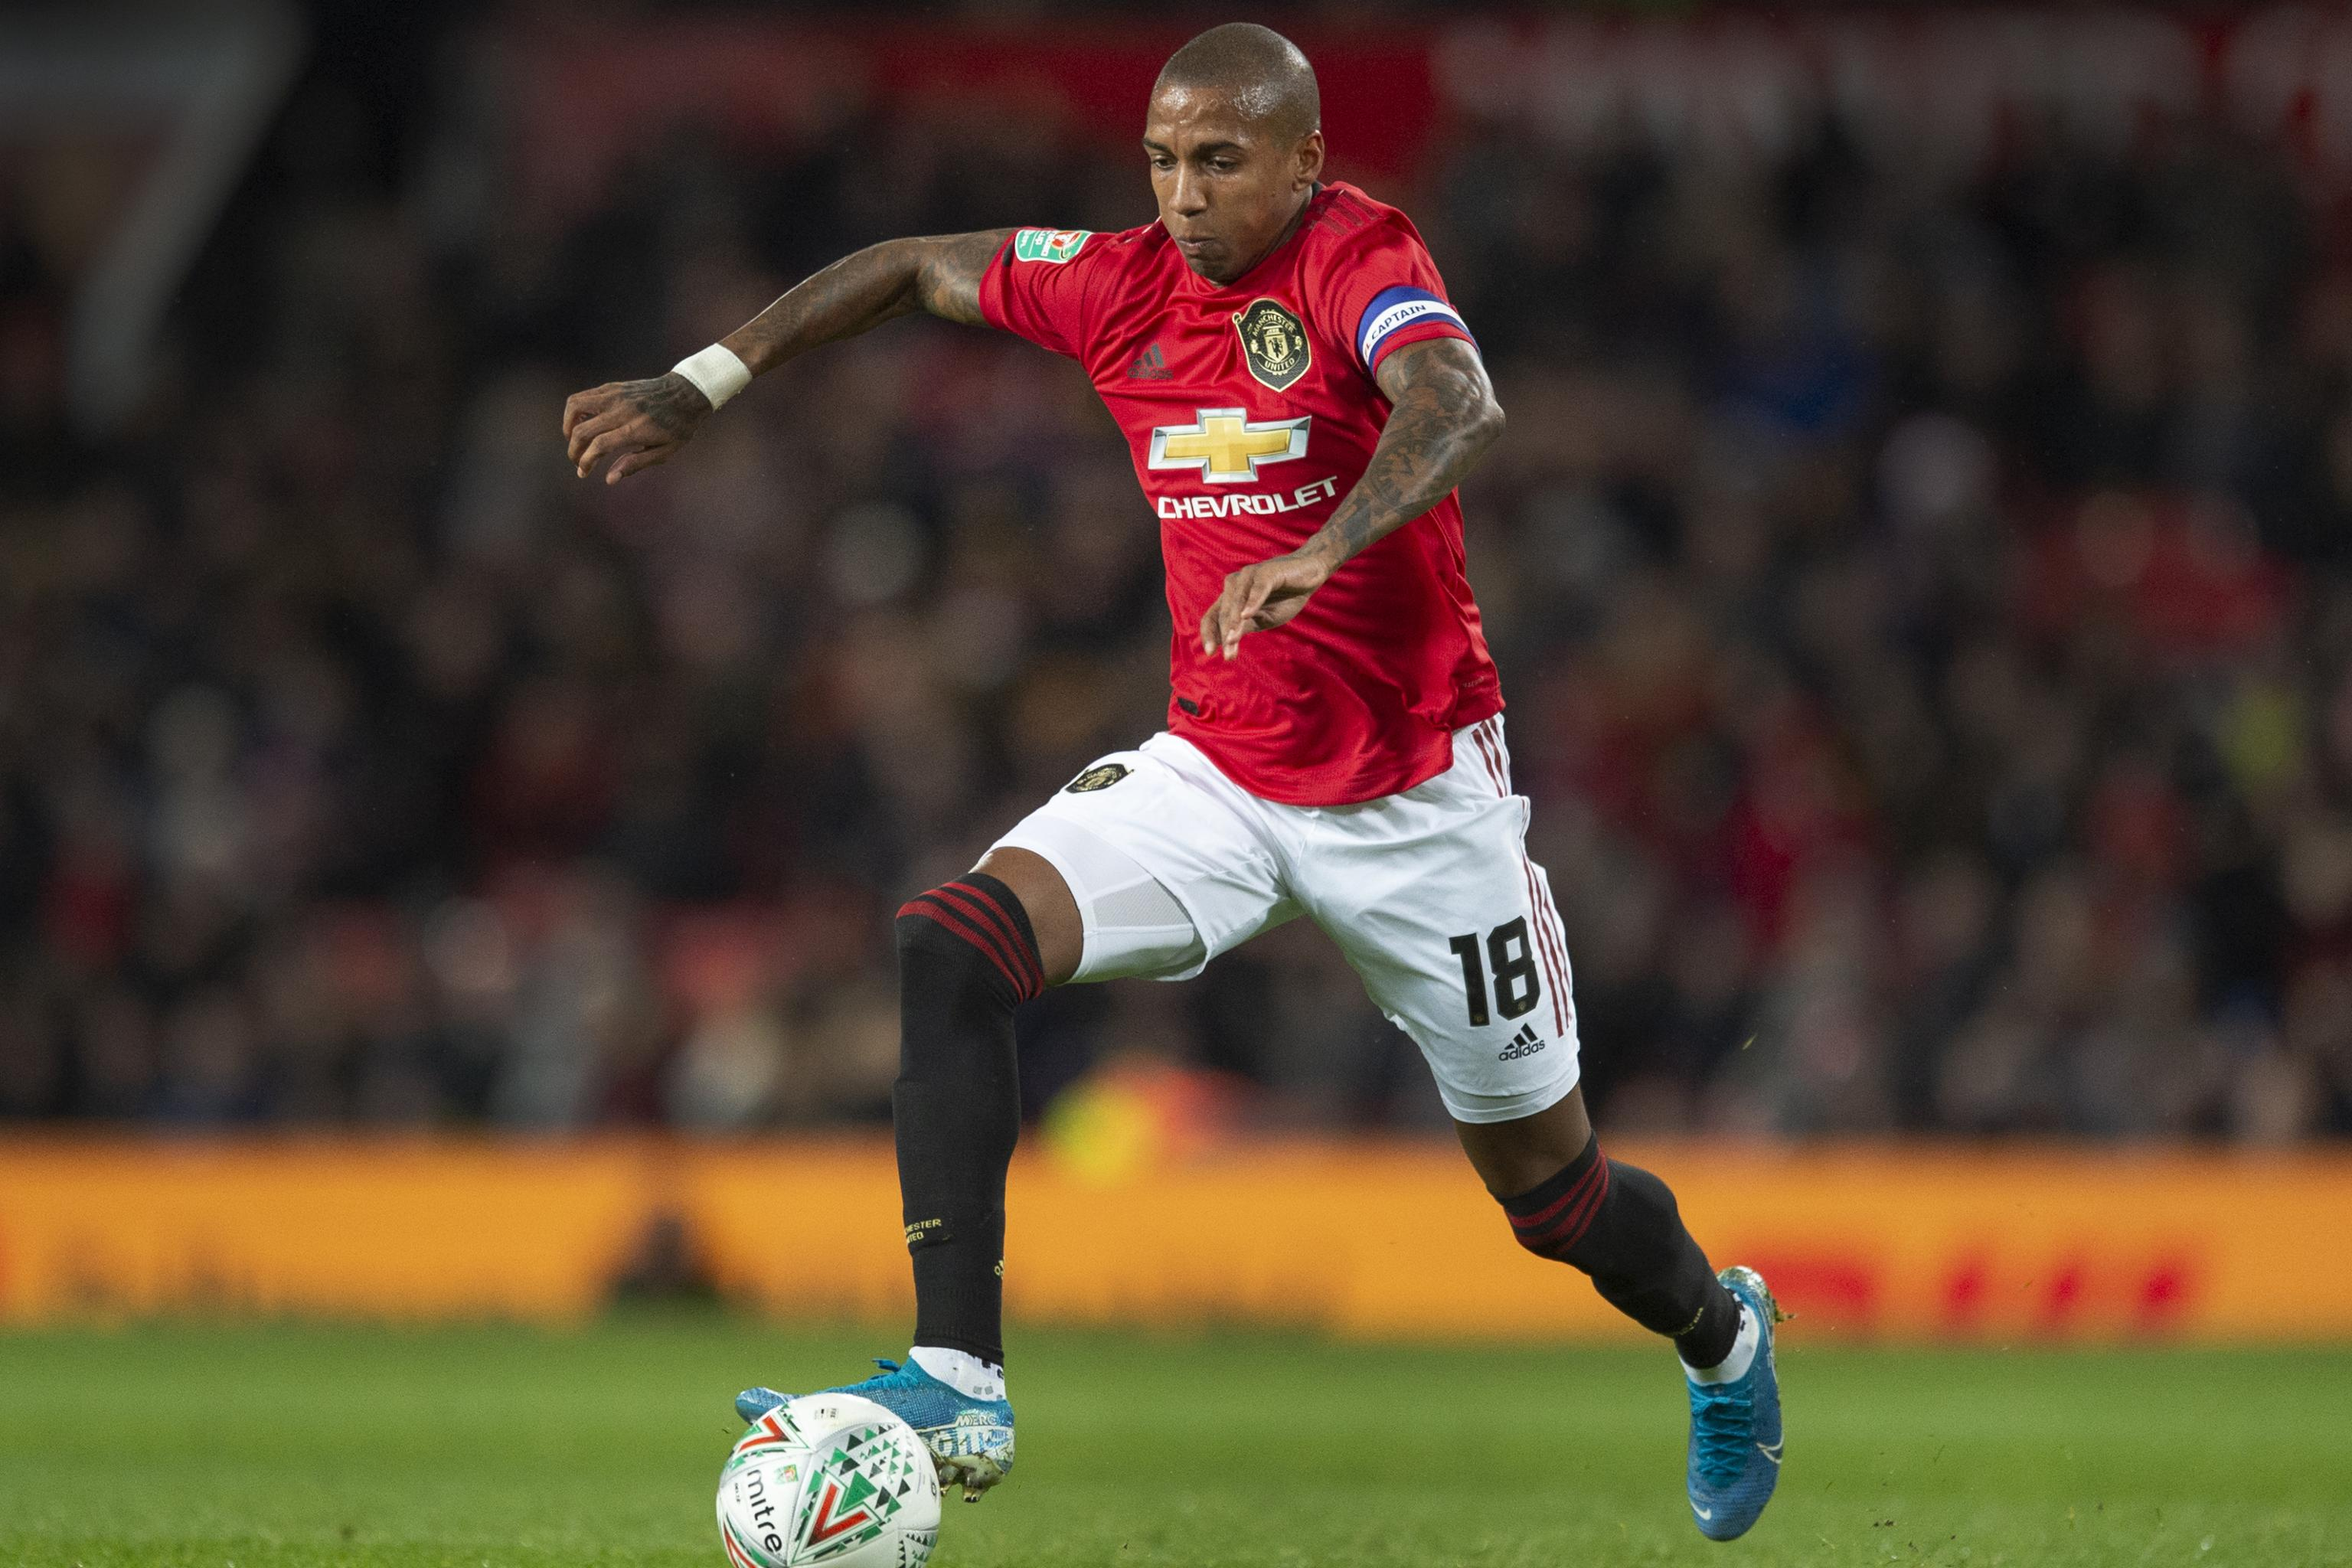 Report Manchester United S Ashley Young To Join Inter After Contract Expires Bleacher Report Latest News Videos And Highlights